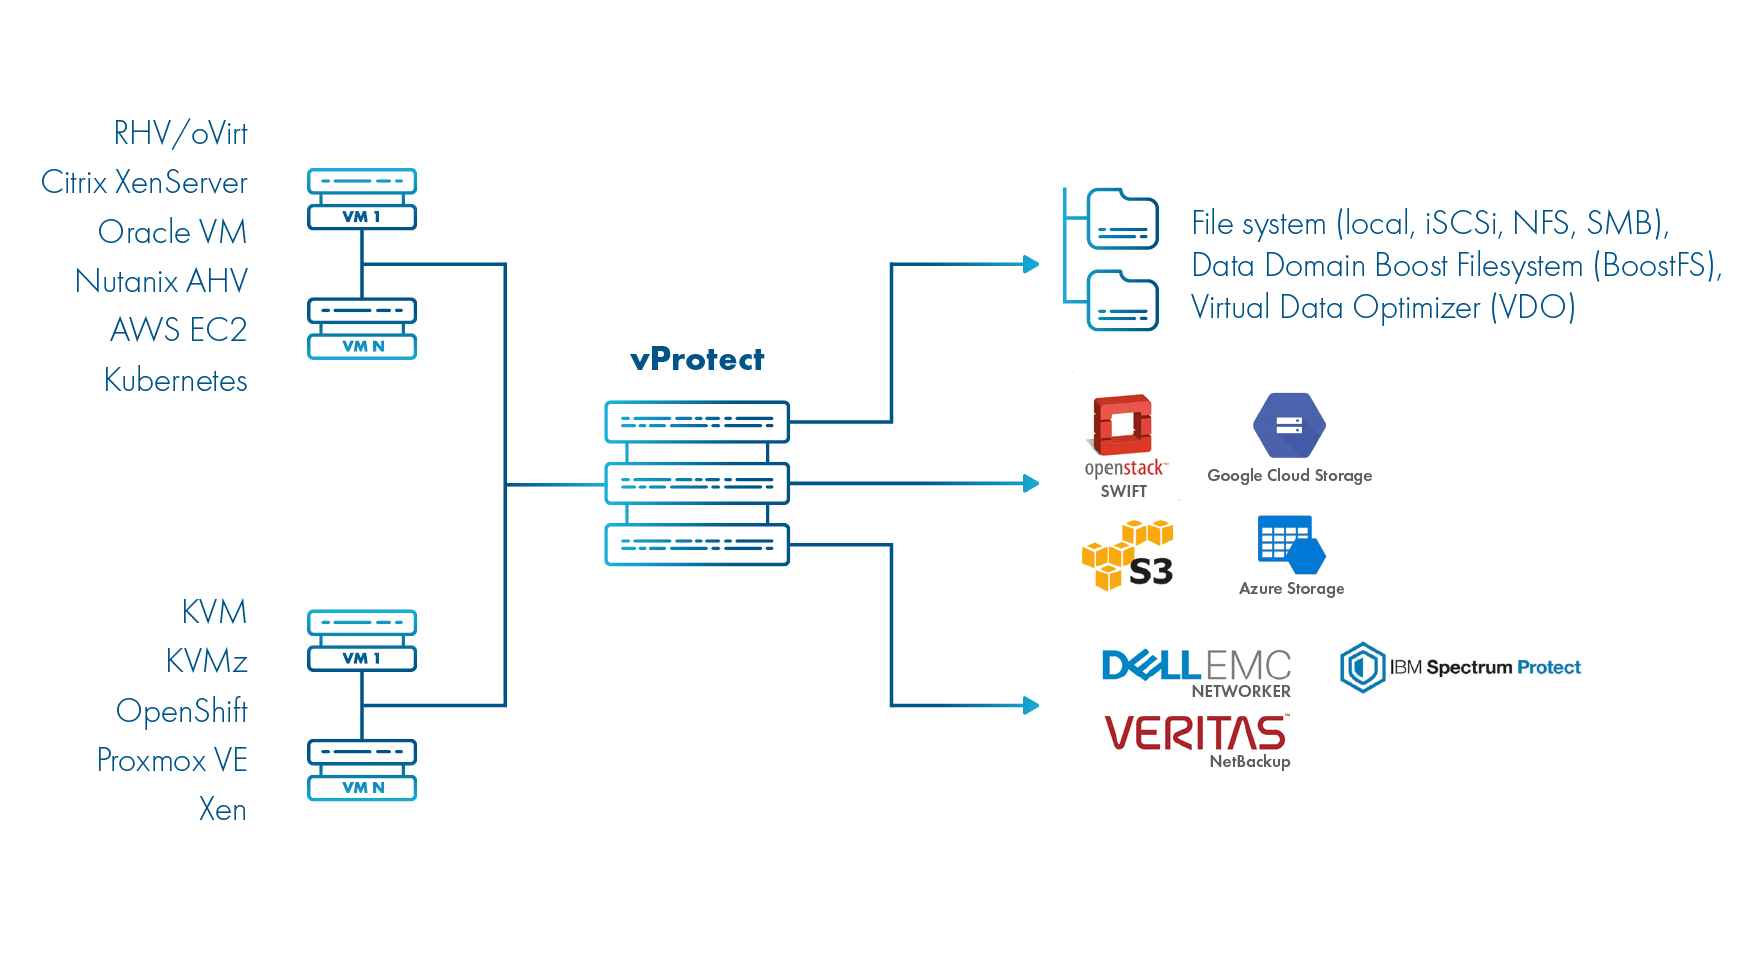 vprotect - Modernized Data Protection for Open Virtual Machines